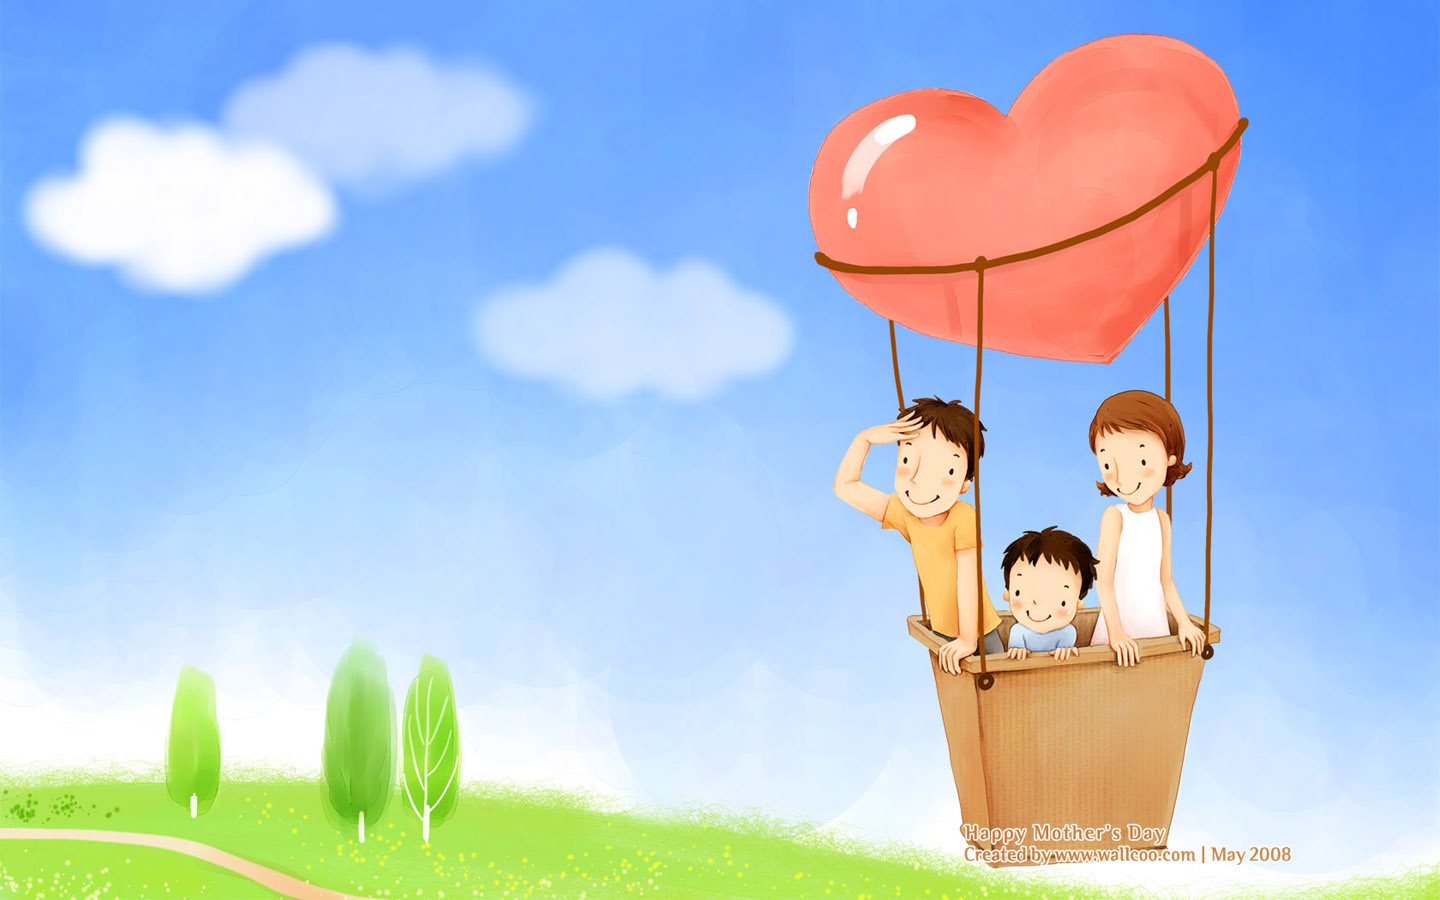 childhood Love Wallpaper : I Love My Family Wallpaper - WallpaperSafari